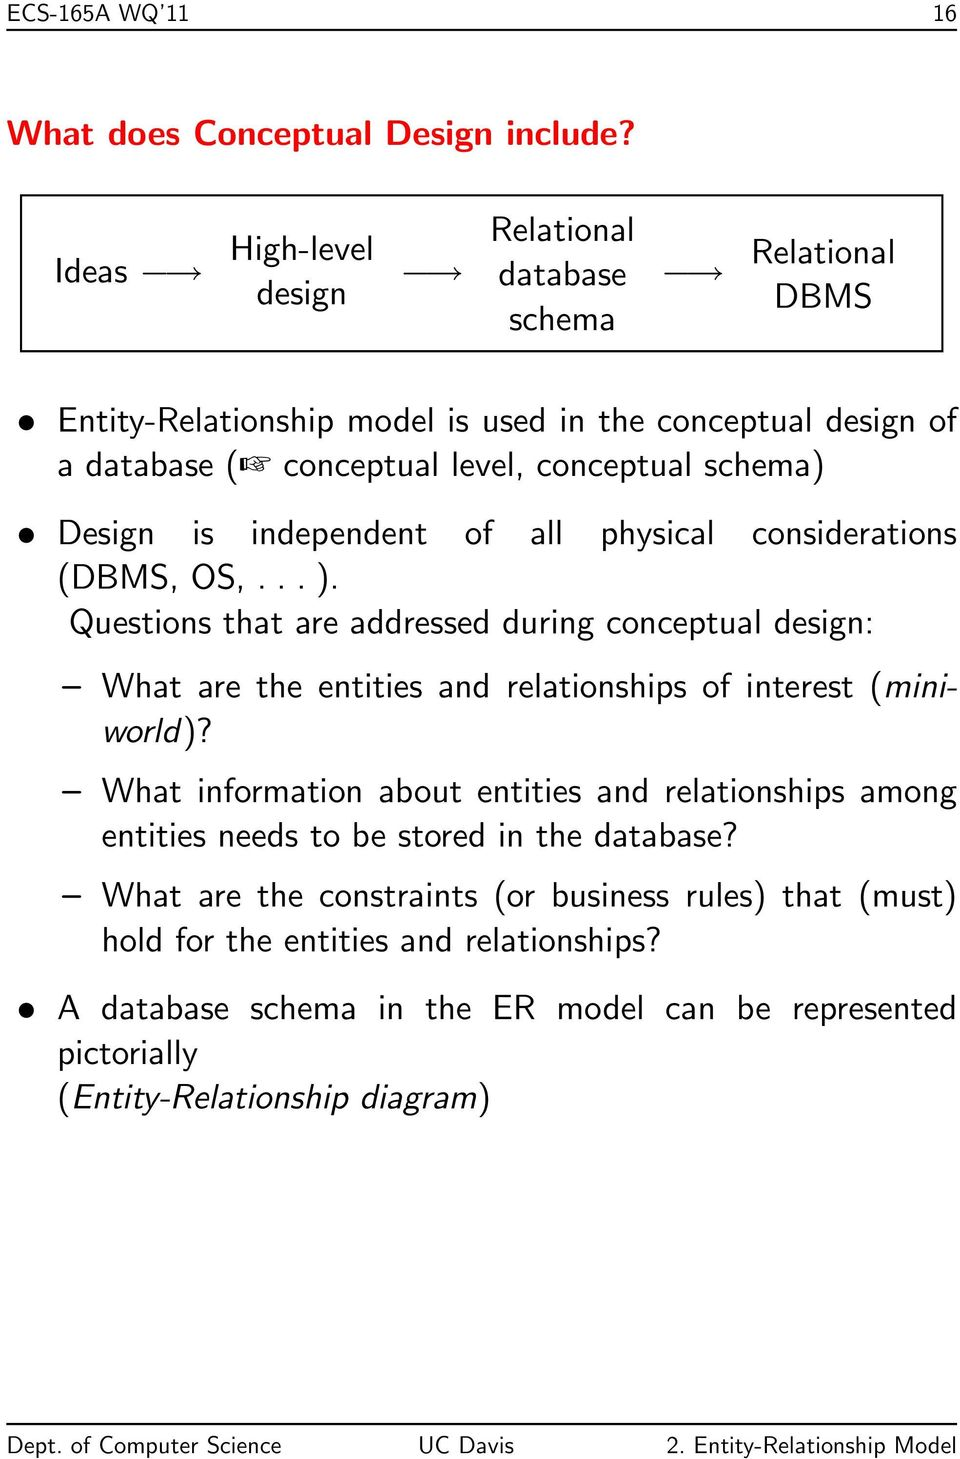 Design is independent of all physical considerations (DBMS, OS,... ).